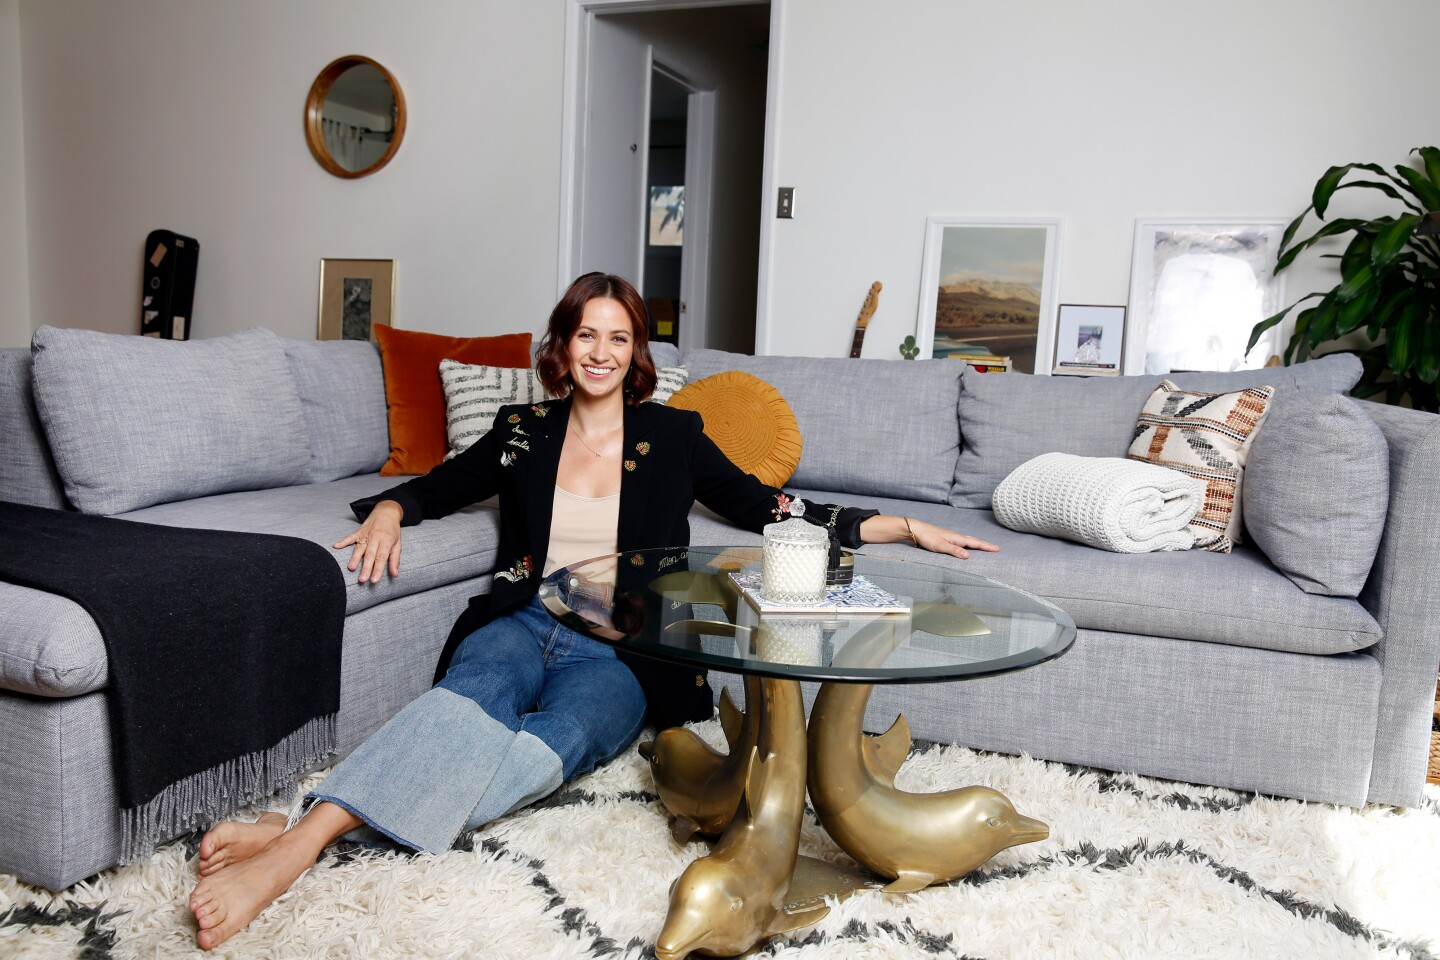 LOS ANGELES, CALIF-SEPTEMBER 17, 2019: Actress Kristen Gutoskie poses for a portrait in the living room of her Silverlake home on September 17, 2019 in Los Angeles, California. Gutoskie says this is her favorite room because the living room feels open and is a place where she spends a lot of her meditative and creative time. (Photo By Dania Maxwell / Los Angeles Times)